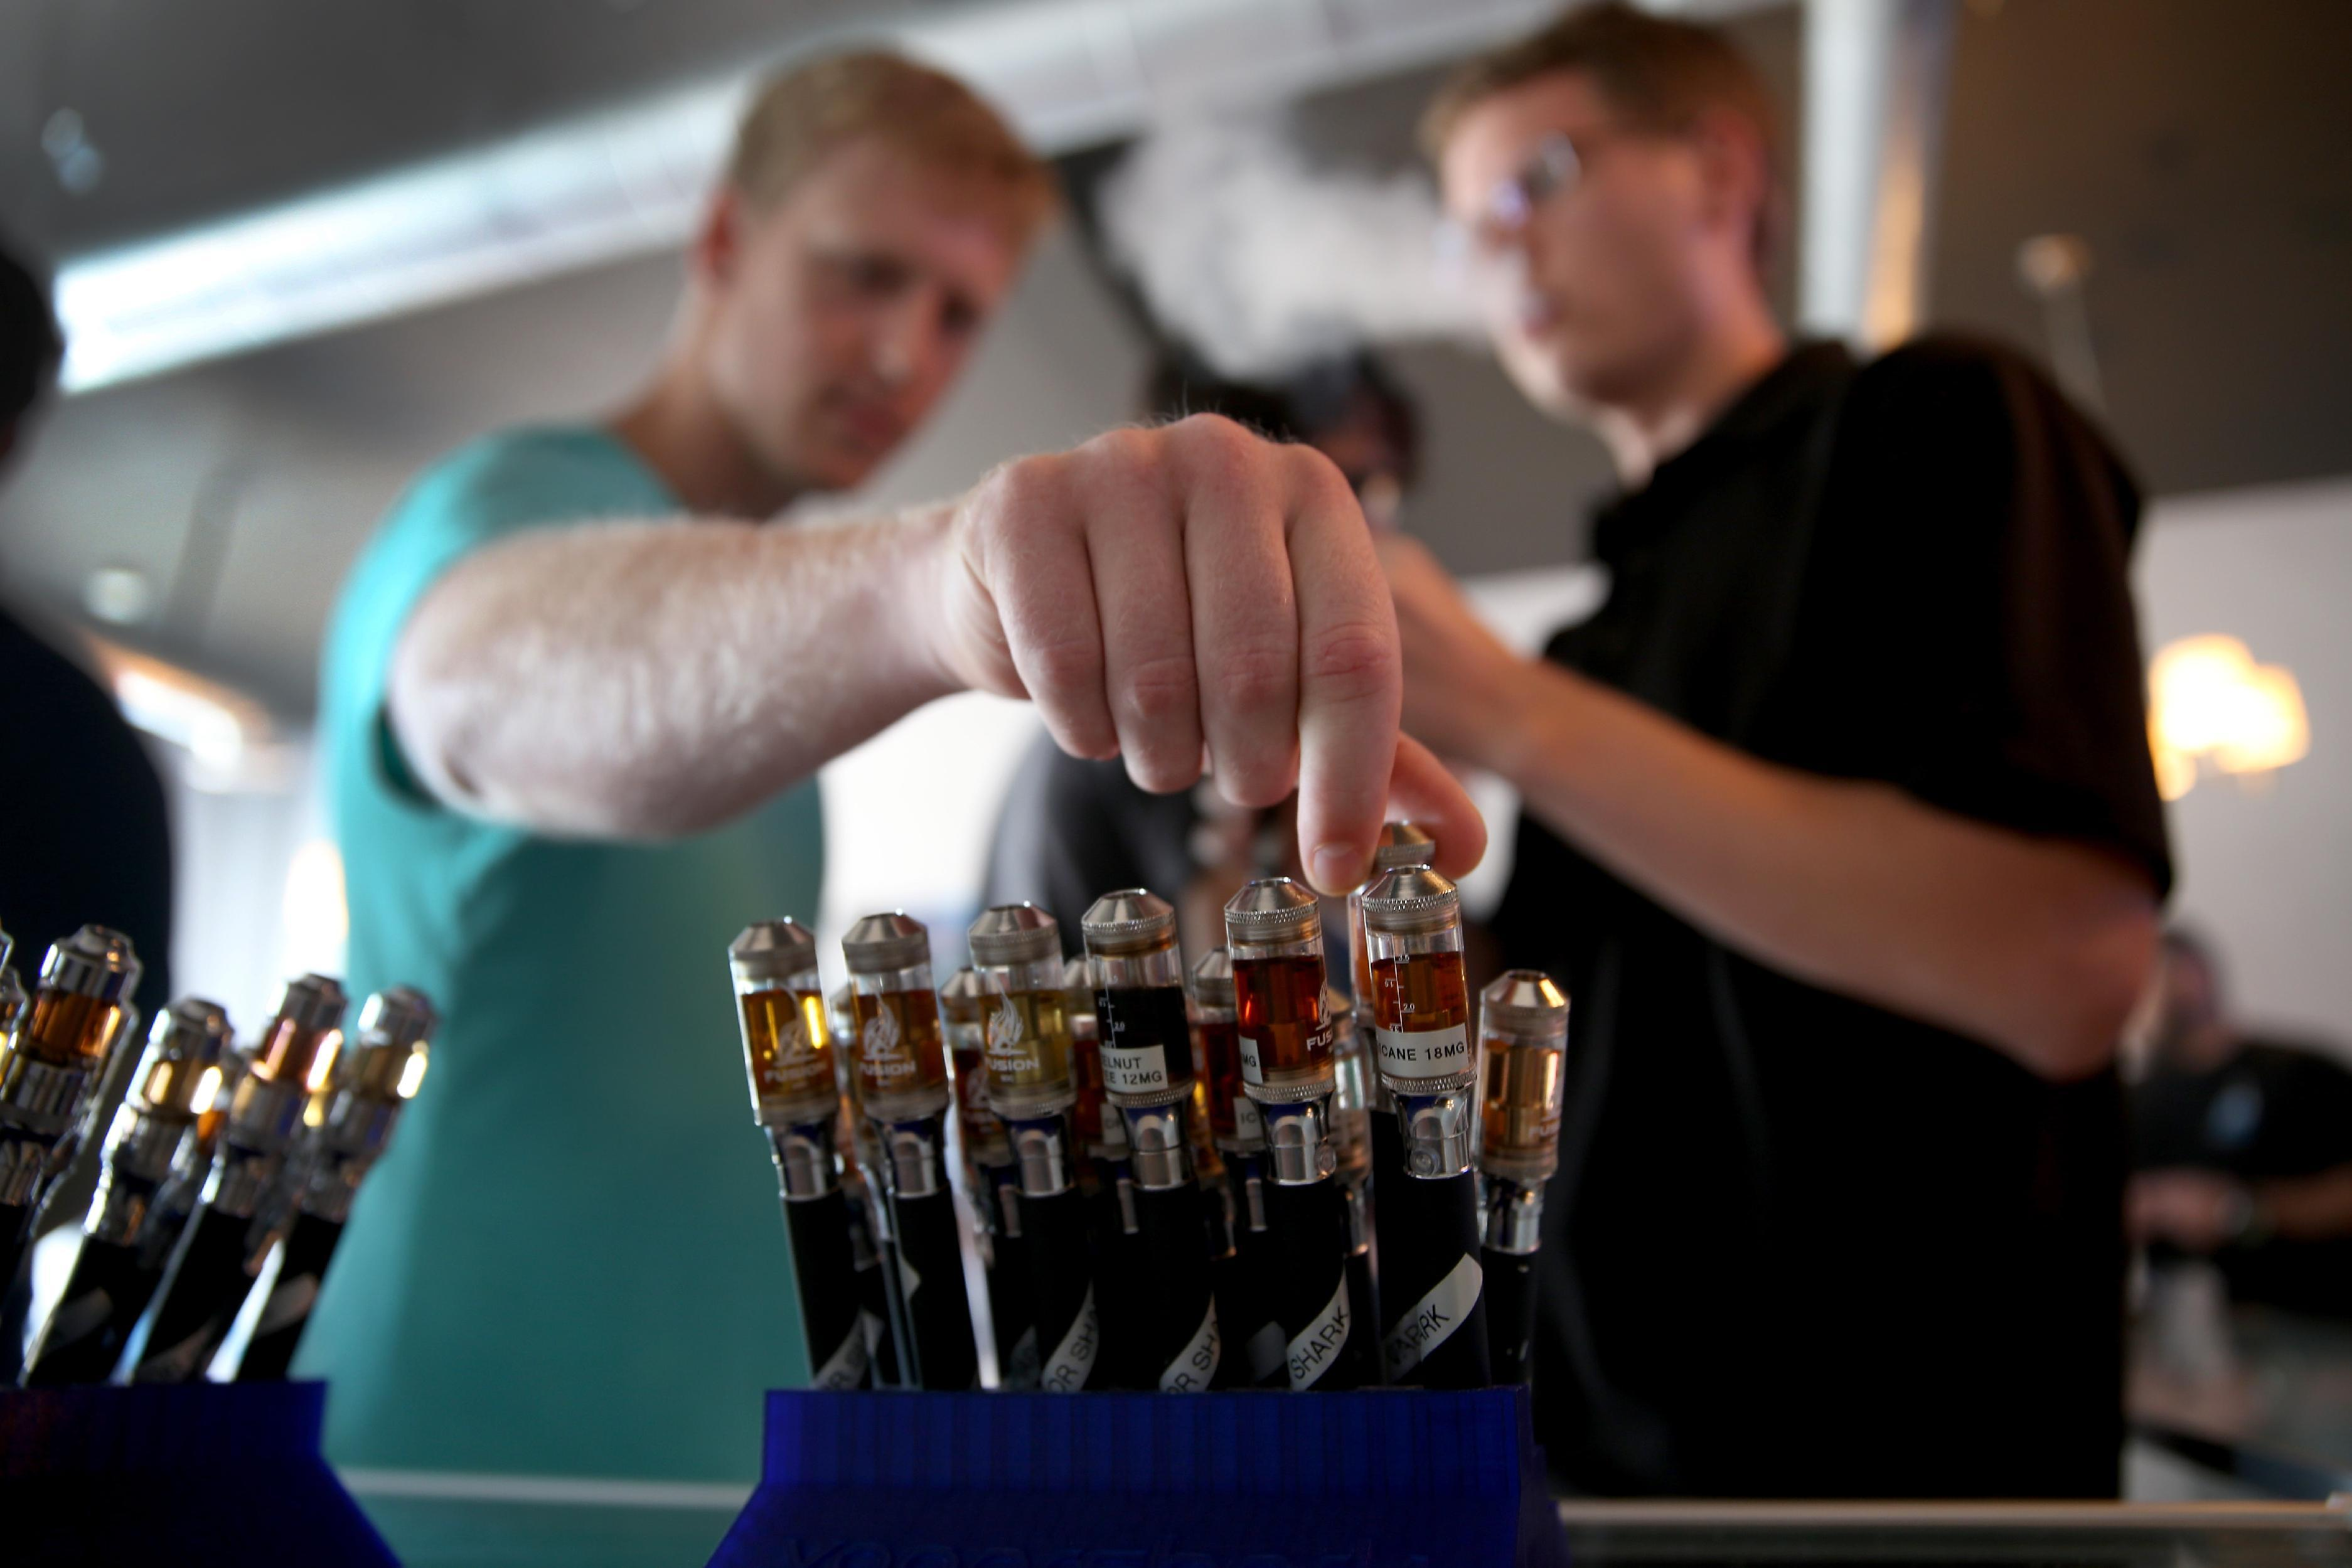 Customers try different flavors of electronic cigarette vapor at the Vapor Shark store on April 24, 2014 in Miami, Florida (AFP Photo/Joe Raedle)